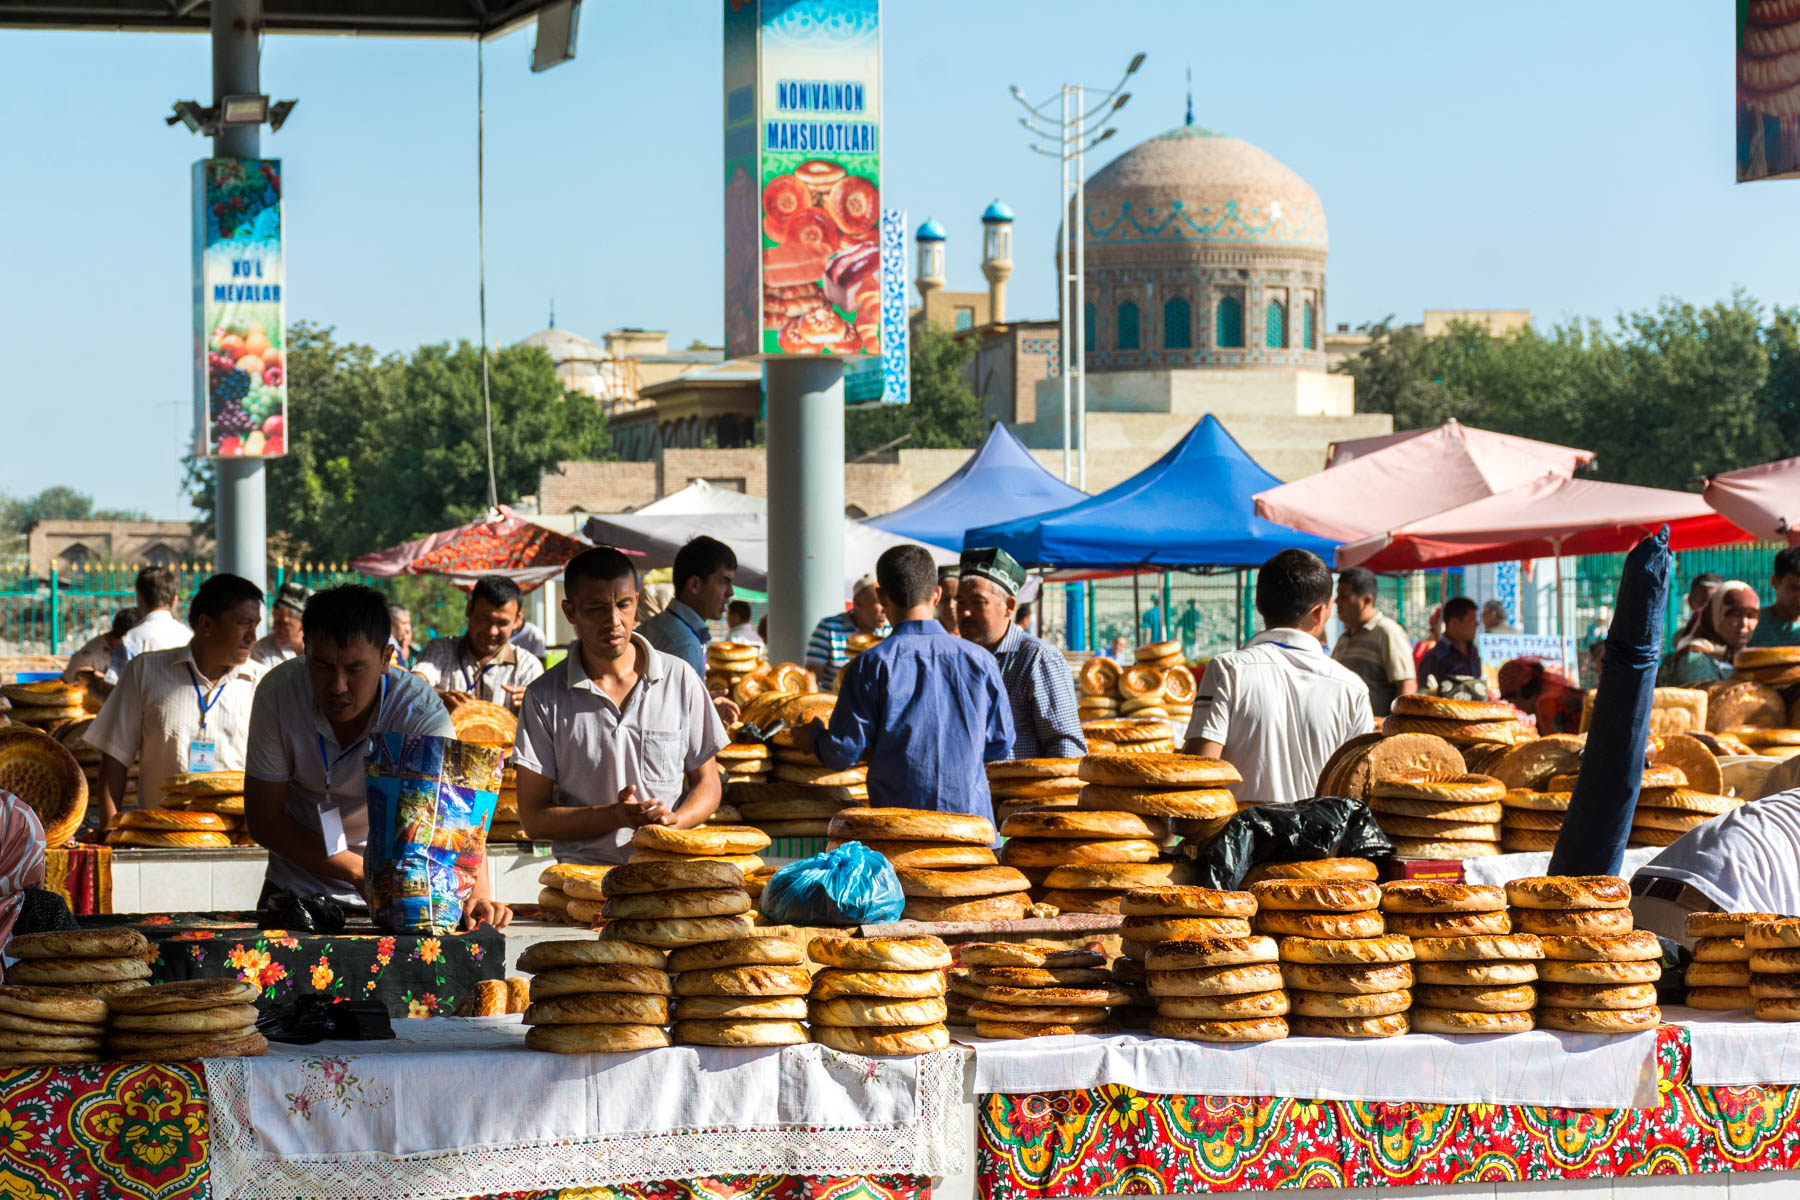 Bread for sale in Andijan, Uzbekistan